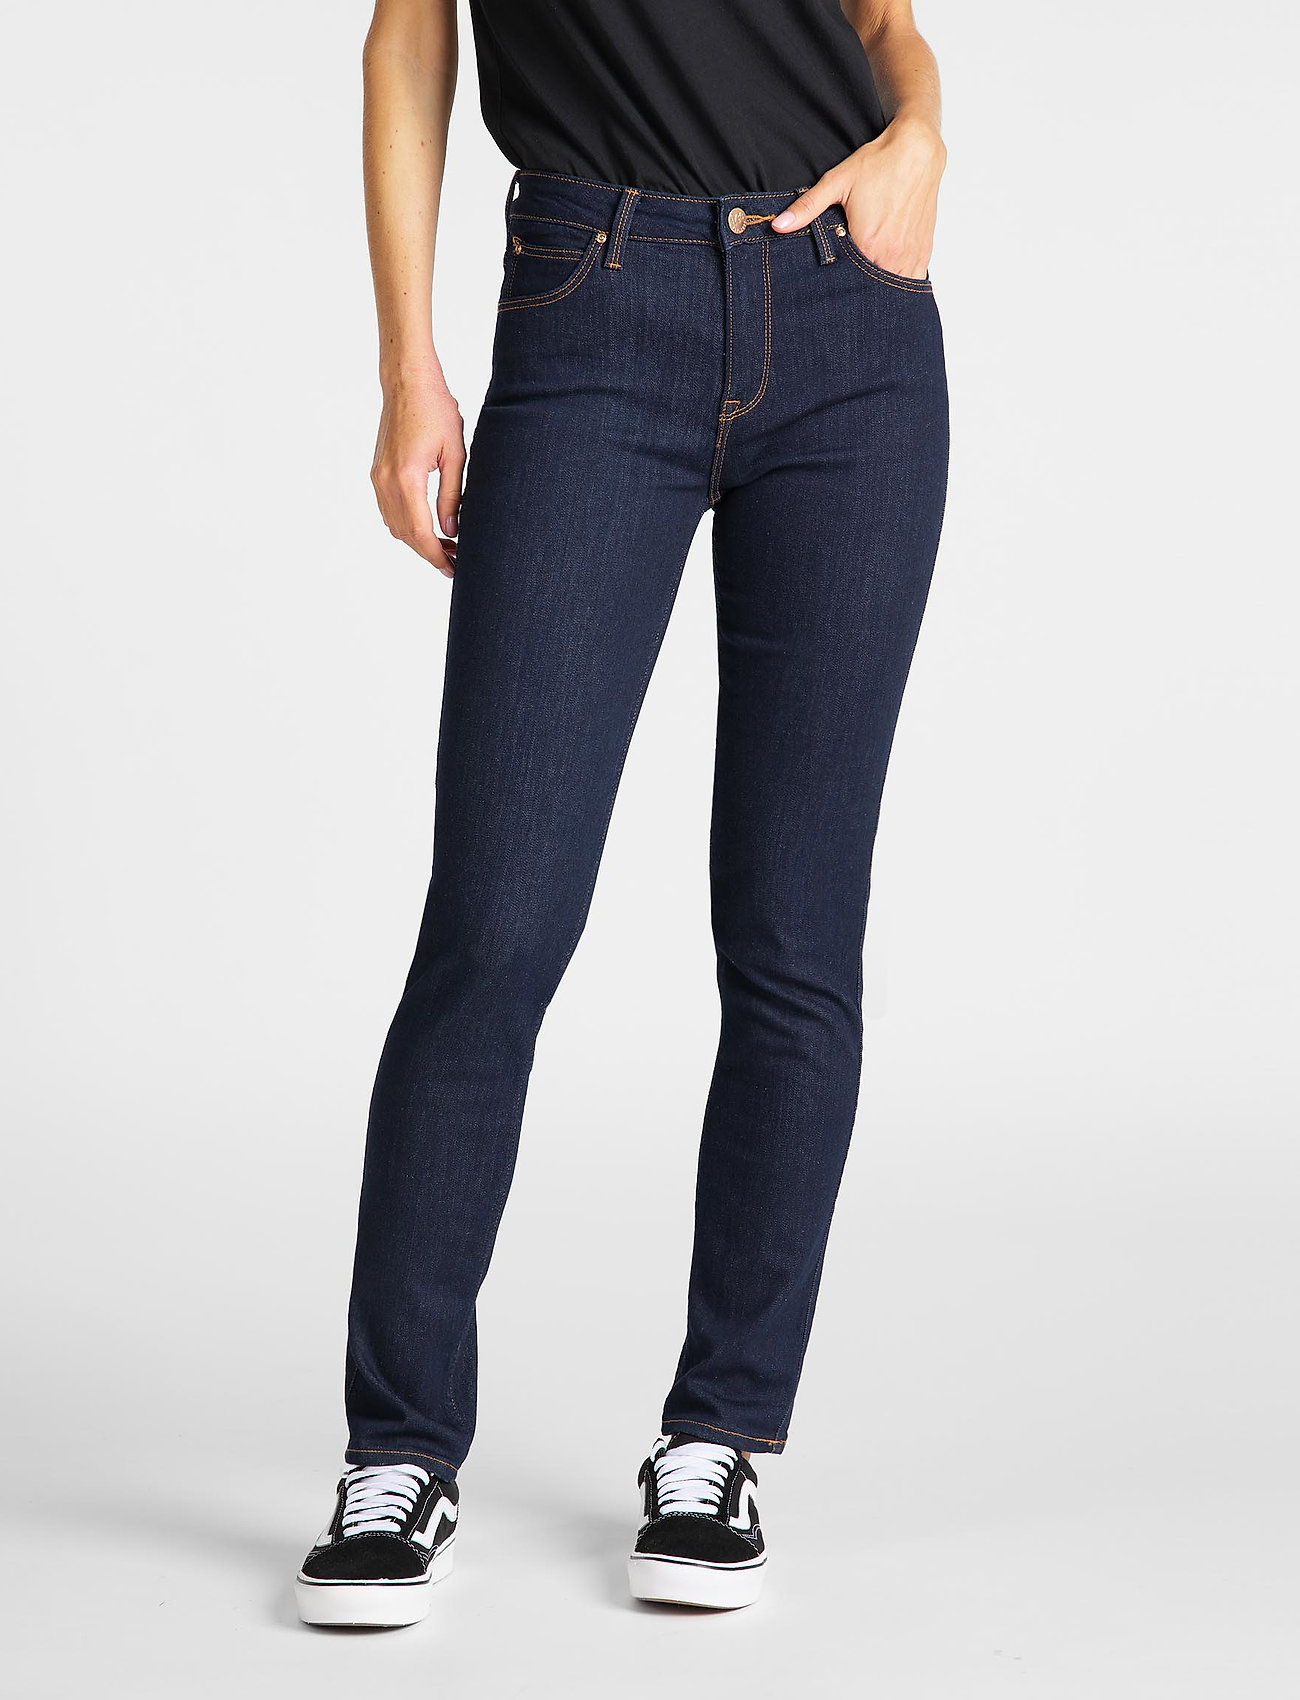 Lee Jeans - ELLY - slim jeans - one wash - 0